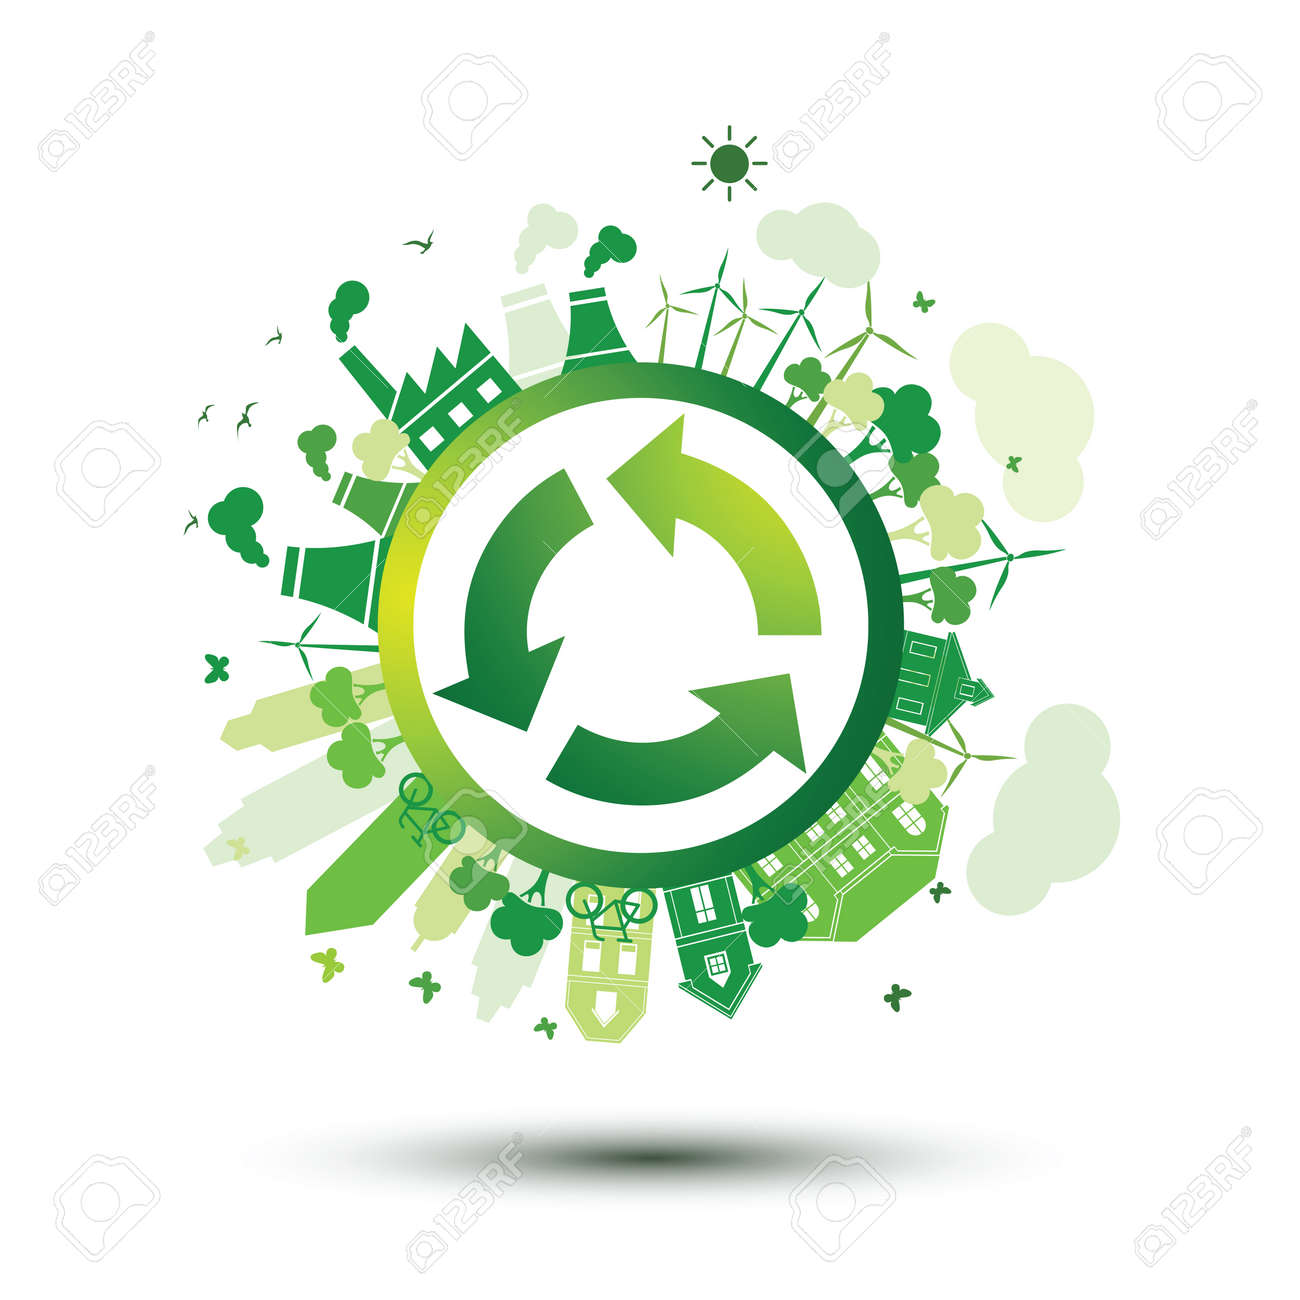 Green city sustainable nature concept with recycle logo,vector illustration - 74911084